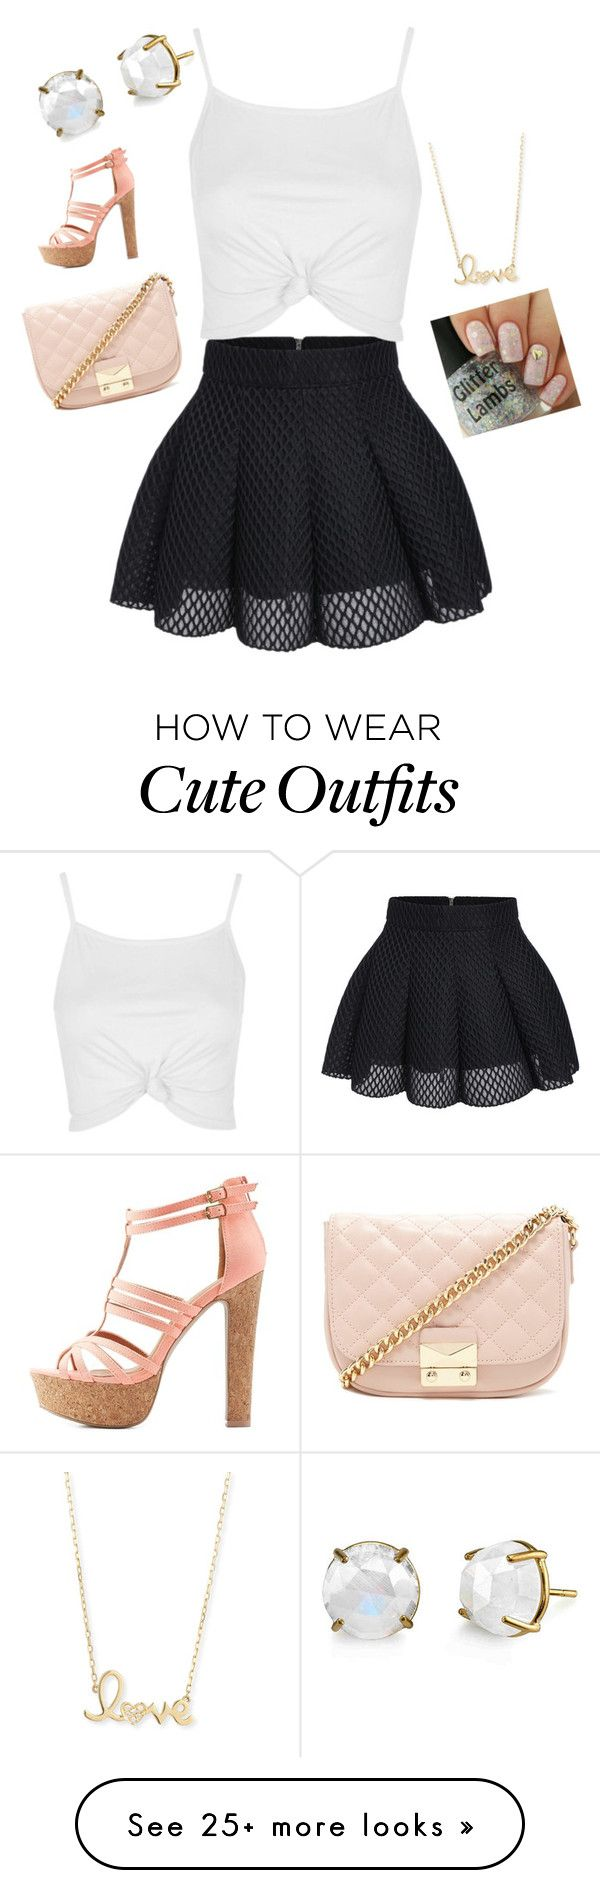 """""""Cute night Out Outfit"""" by iriana17 on Polyvore featuring Topshop, Forever 21, Sydney Evan and Charlotte Russe"""